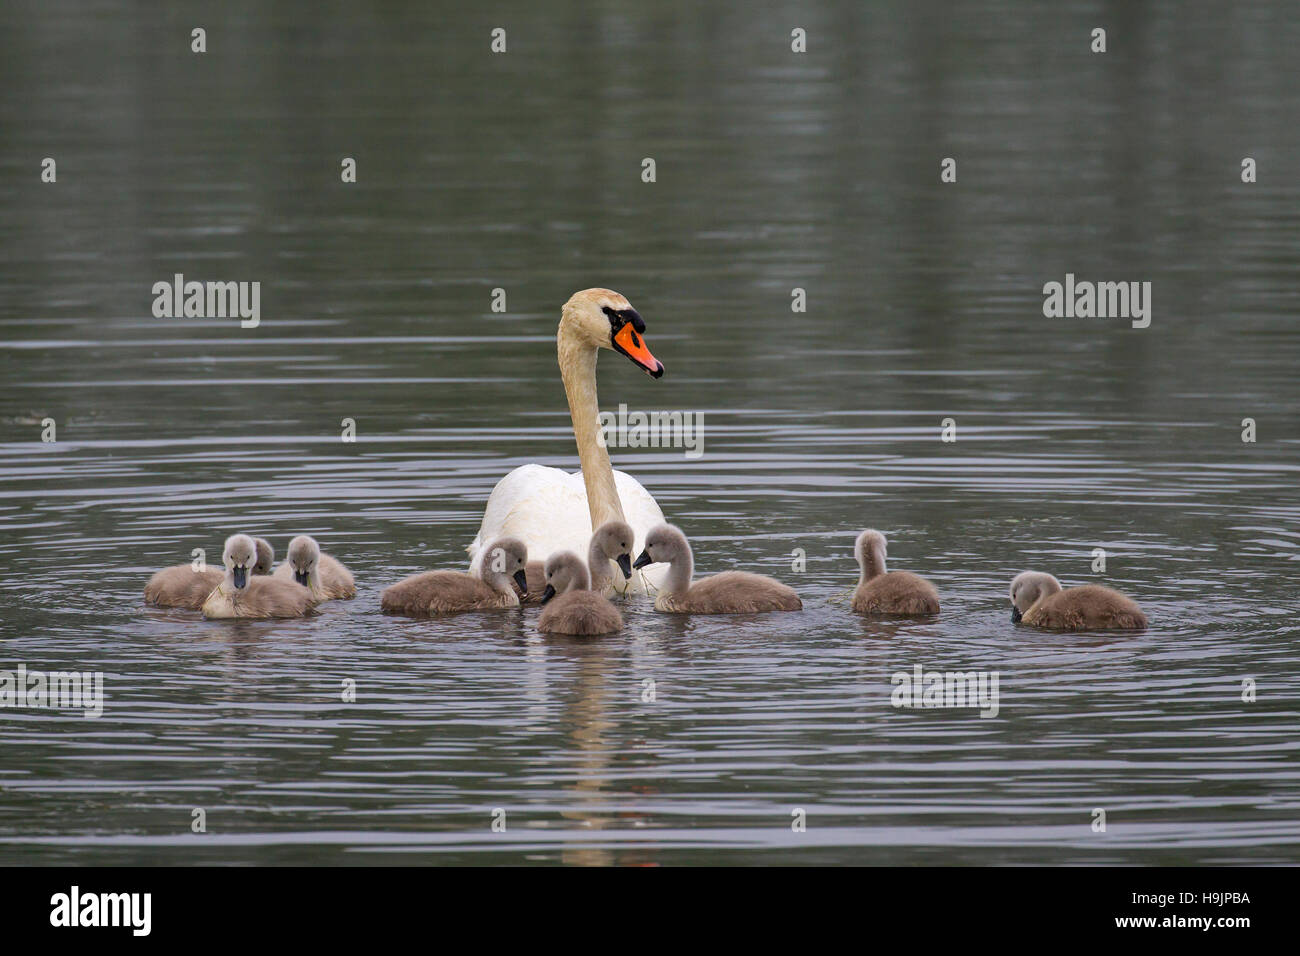 Mute swan (Cygnus olor) swimming with young / cygnets in lake in spring Stock Photo